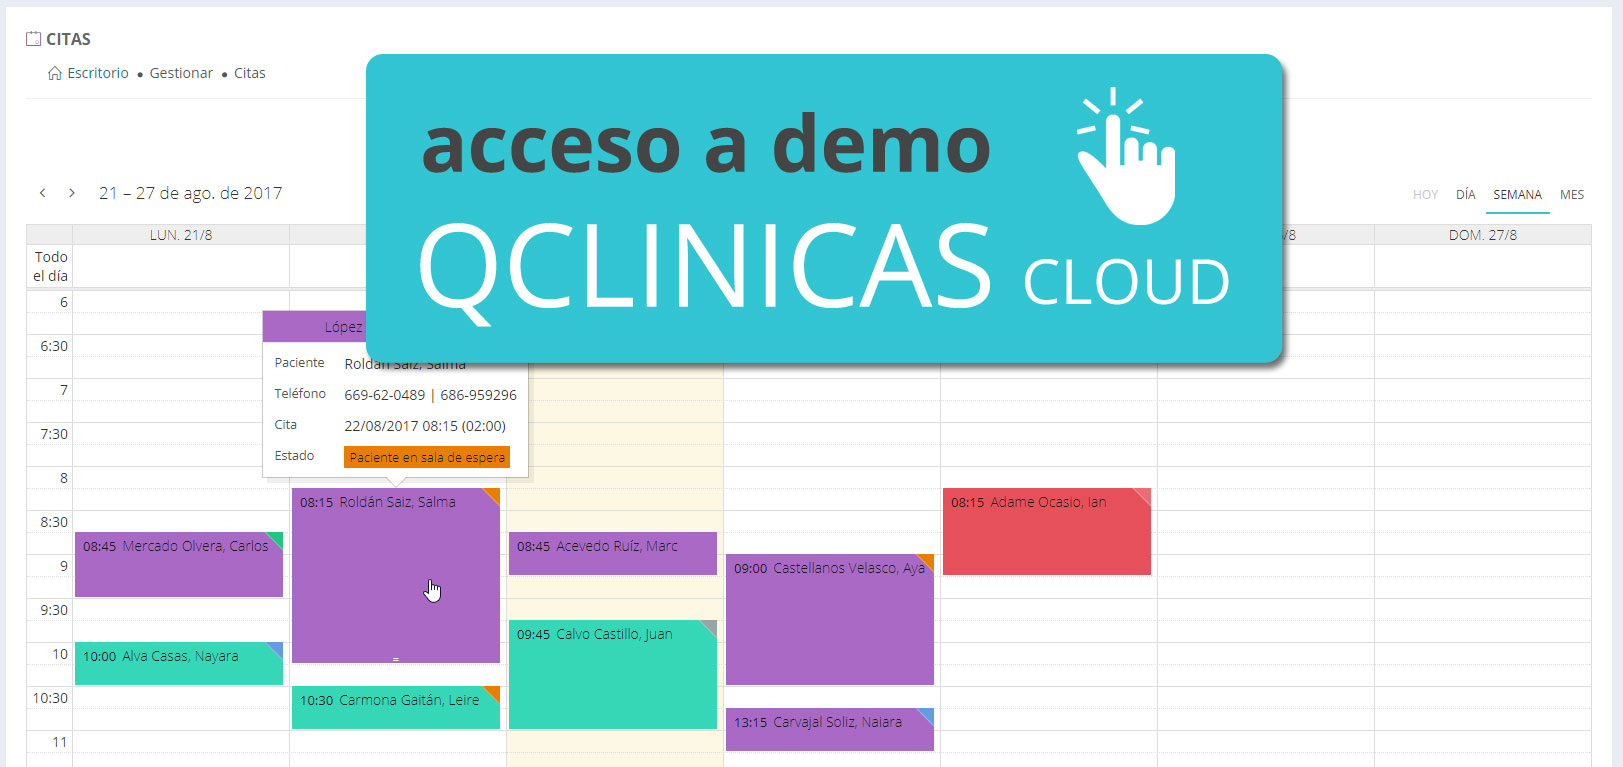 acceso-demo-software-de-gestion-de-clinicas-en-la-nube-gratis